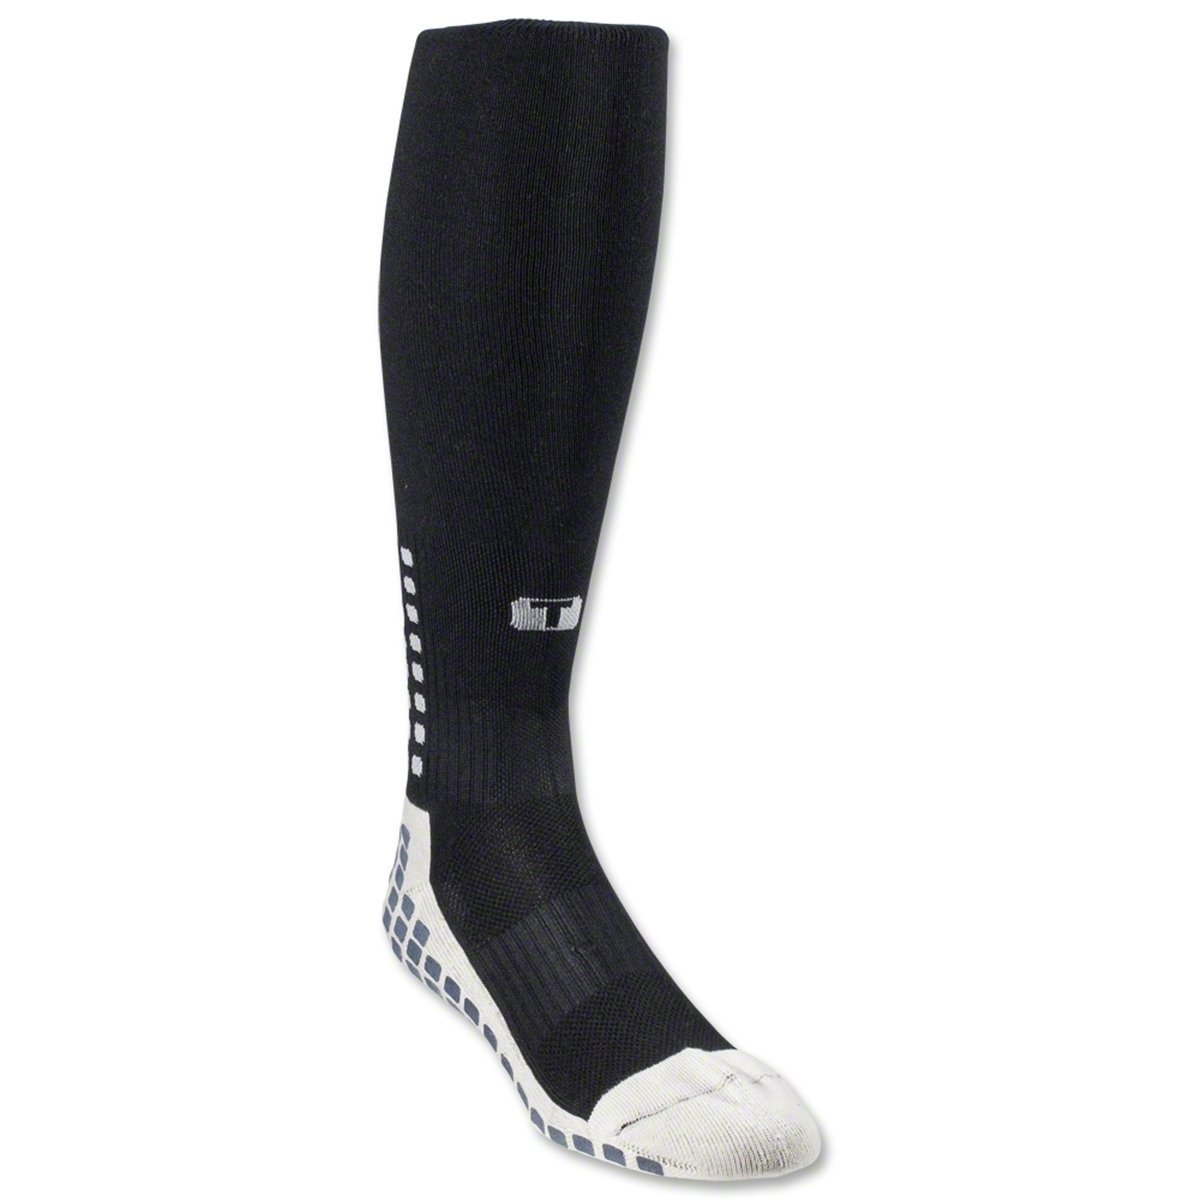 Full Length Over Calf Football Socks - Black/White Trusox 23150